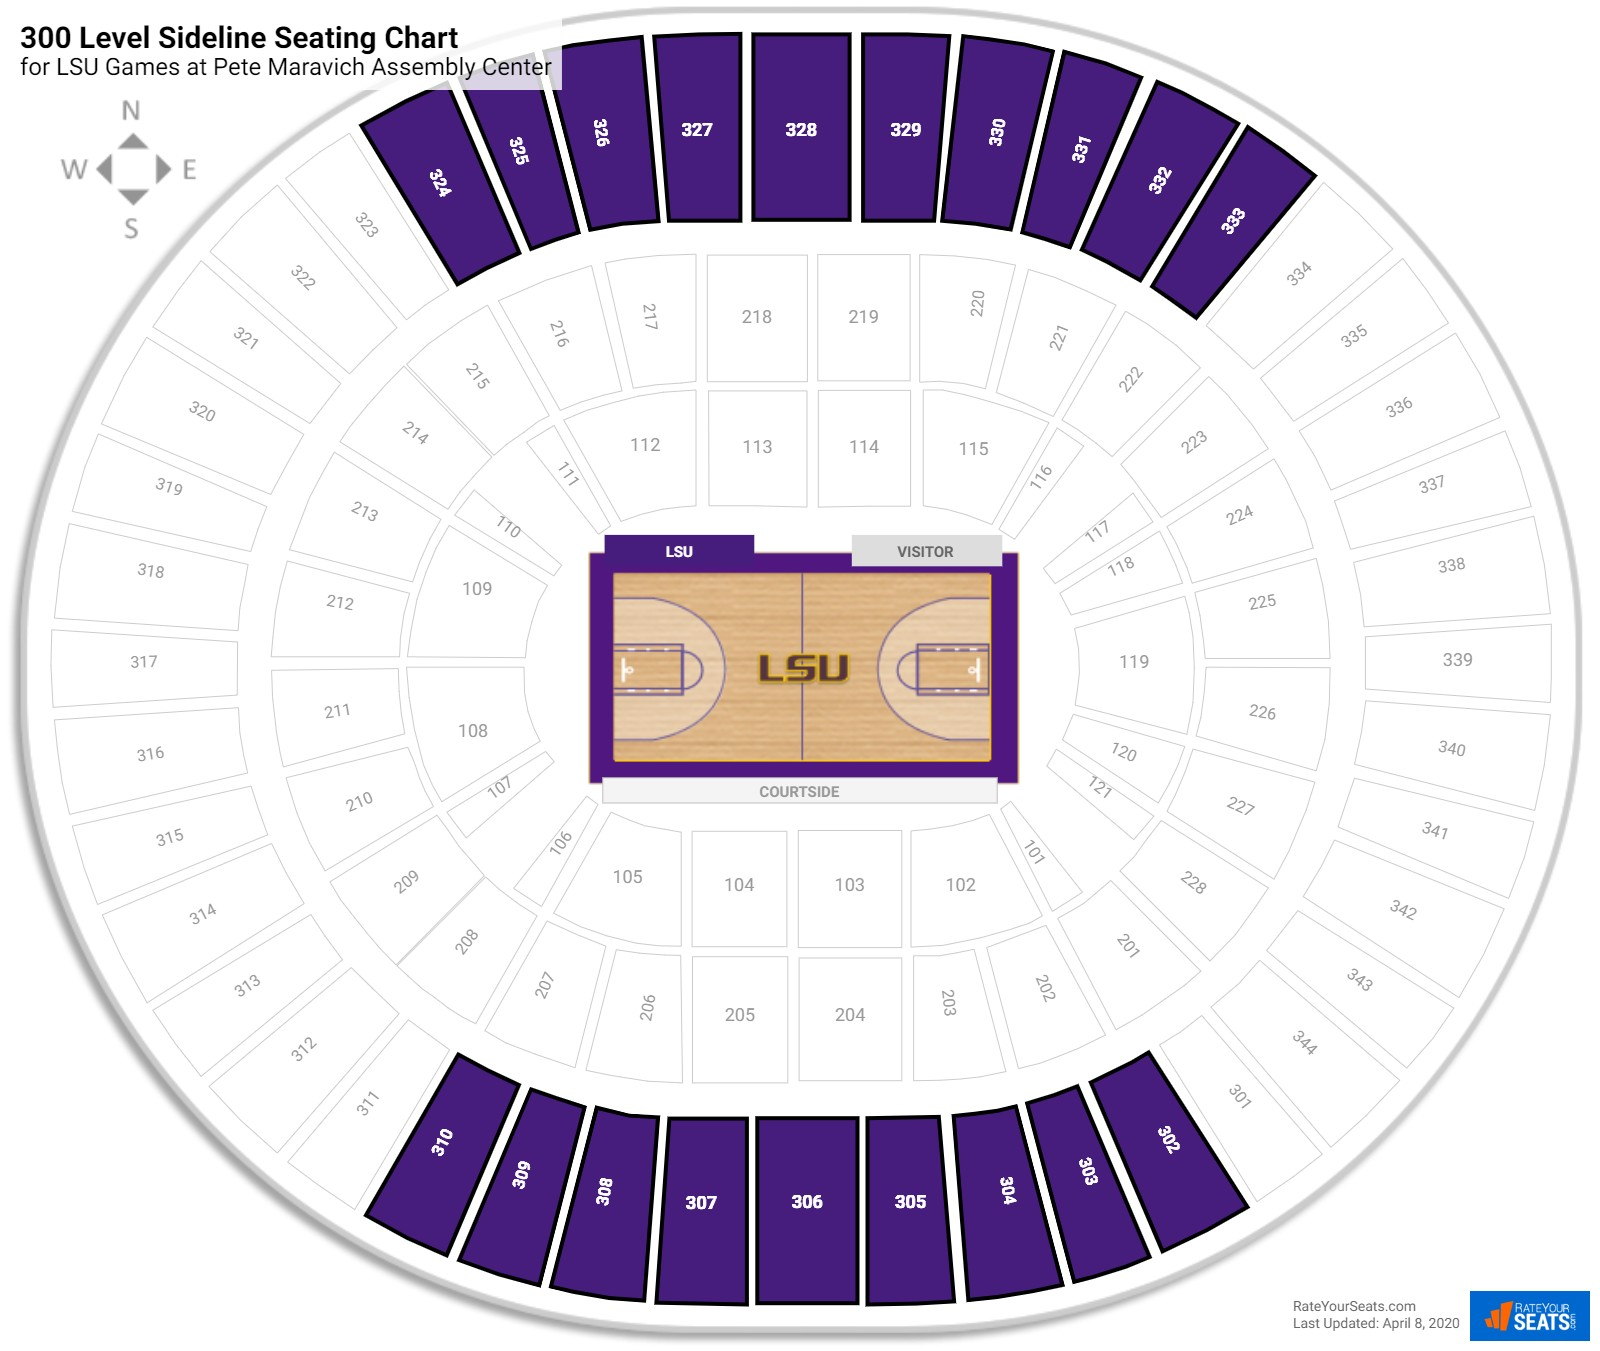 Pete Maravich Assembly Center 300 Level Side seating chart